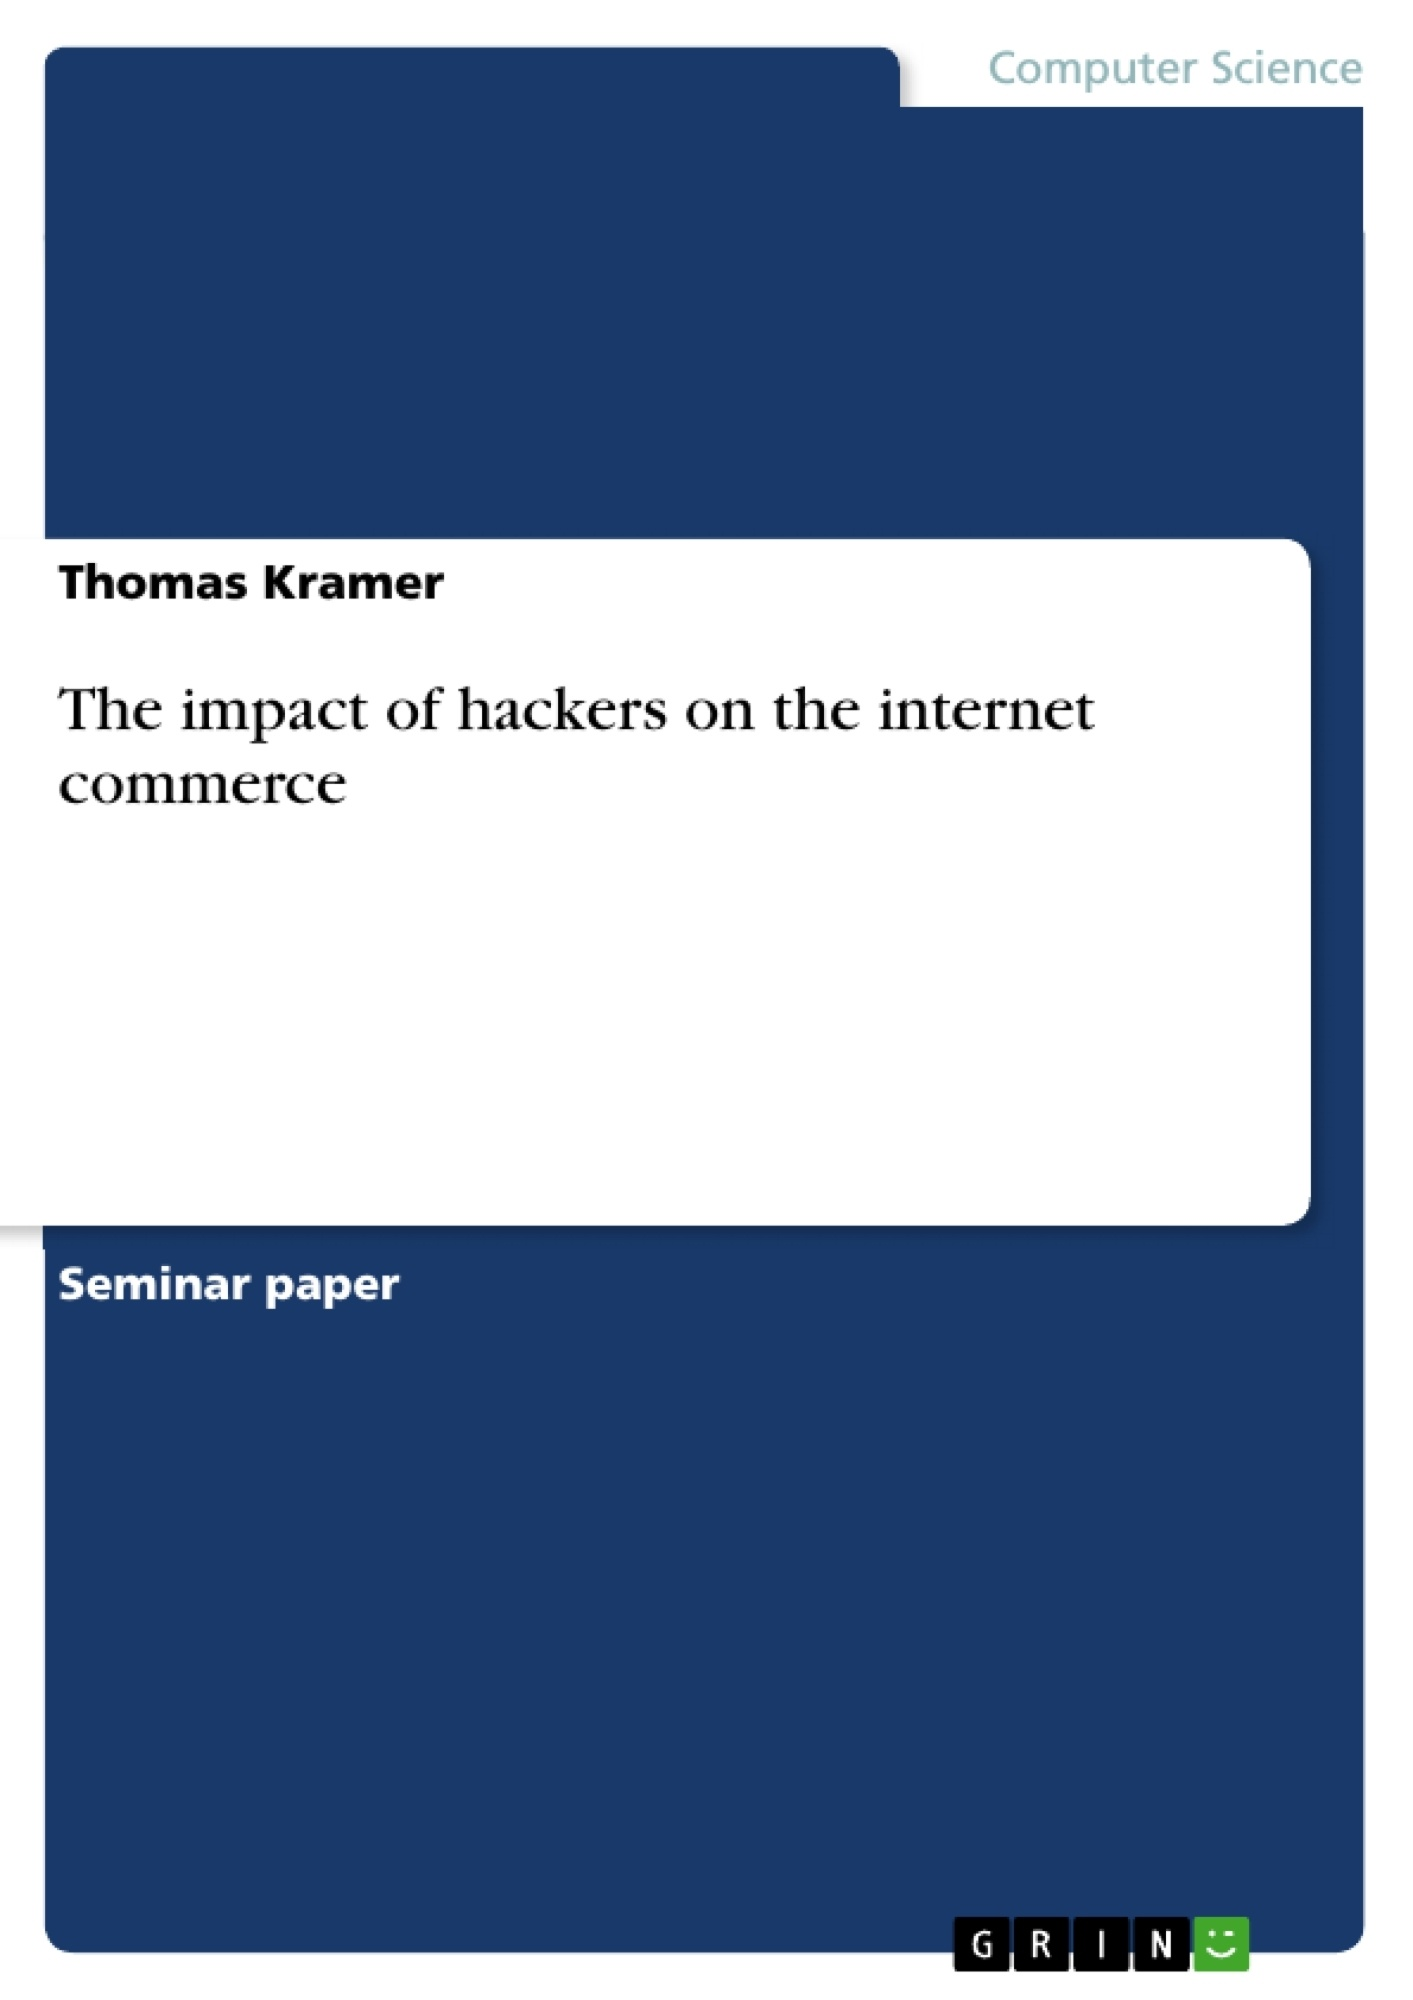 the impact of hackers on the internet commerce publish your upload your own papers earn money and win an iphone 7